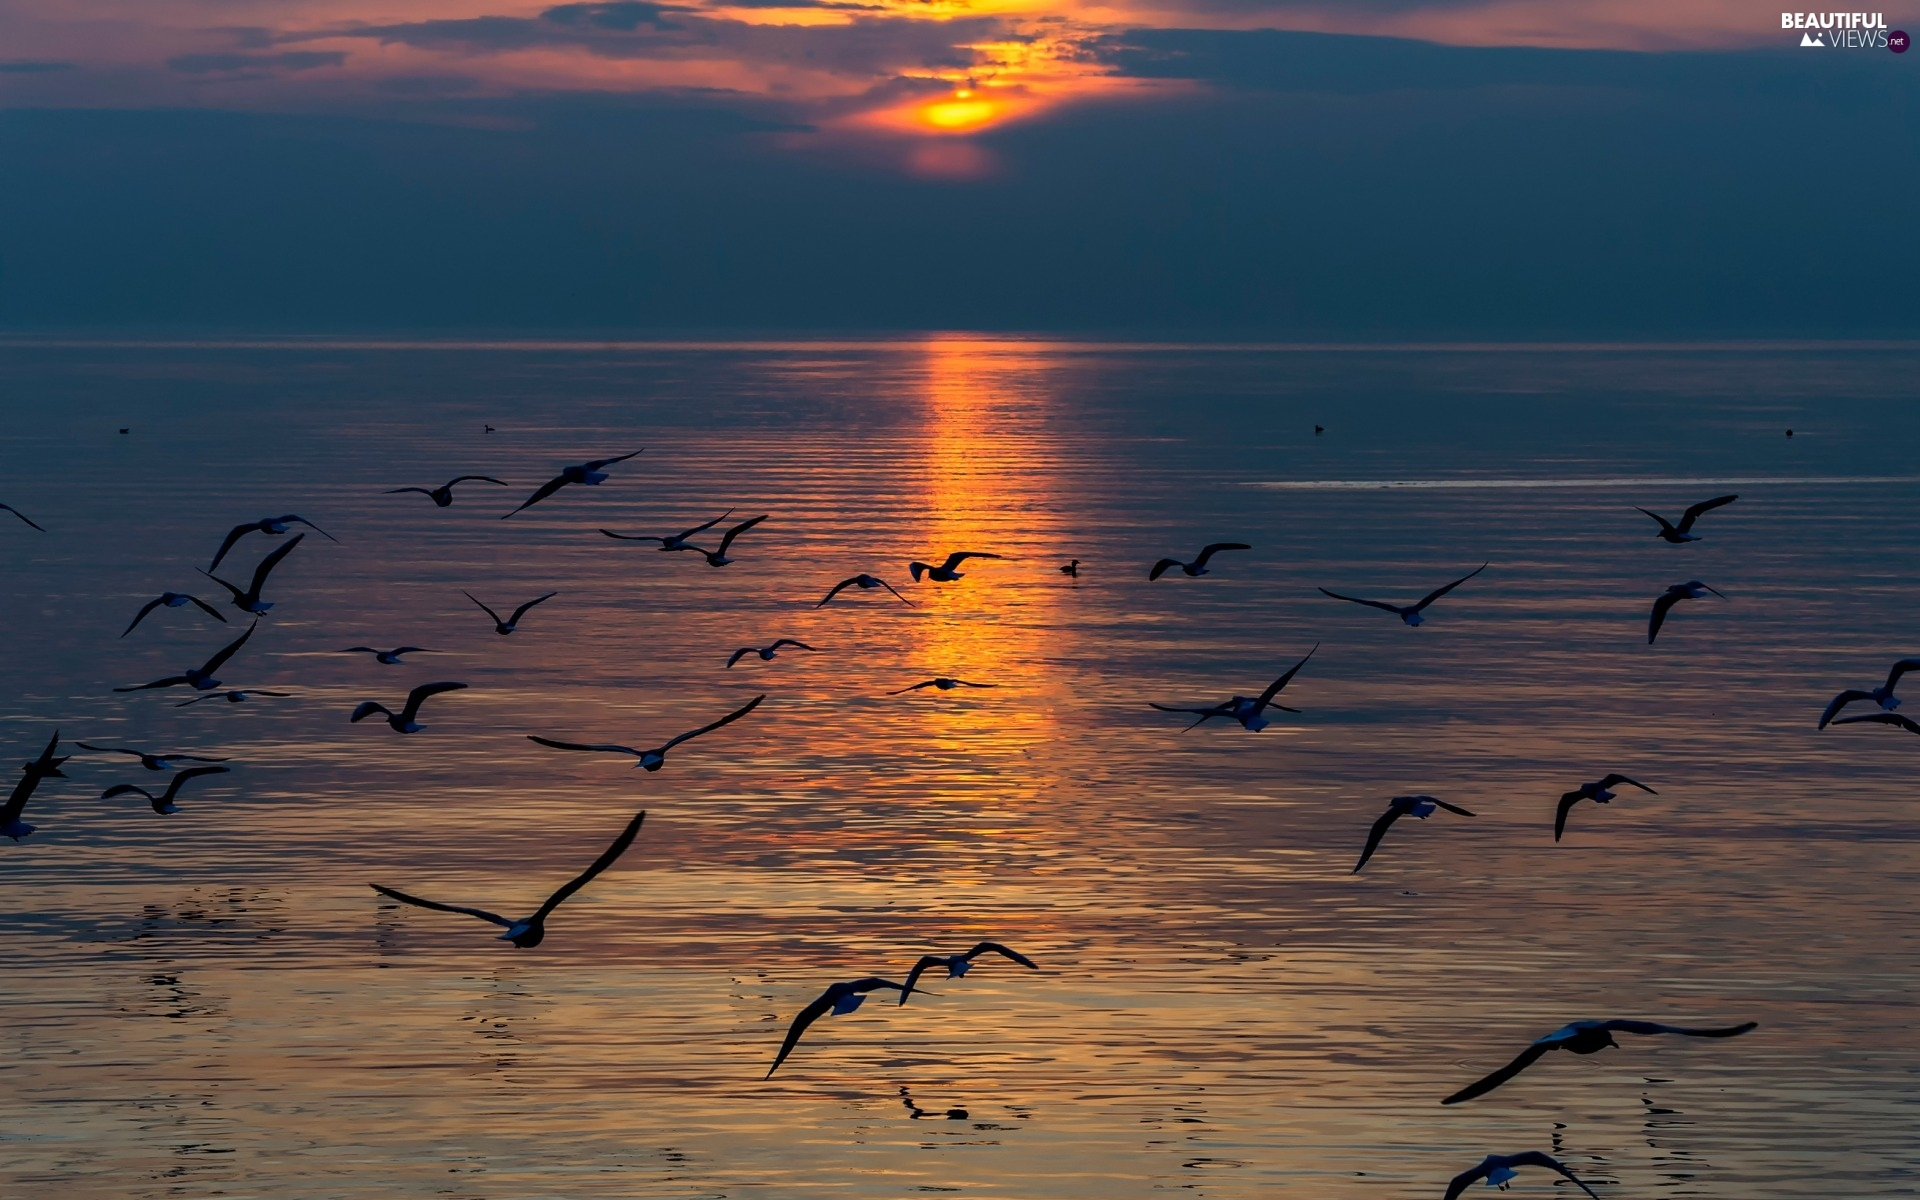 sea, gulls, Great Sunsets, birds